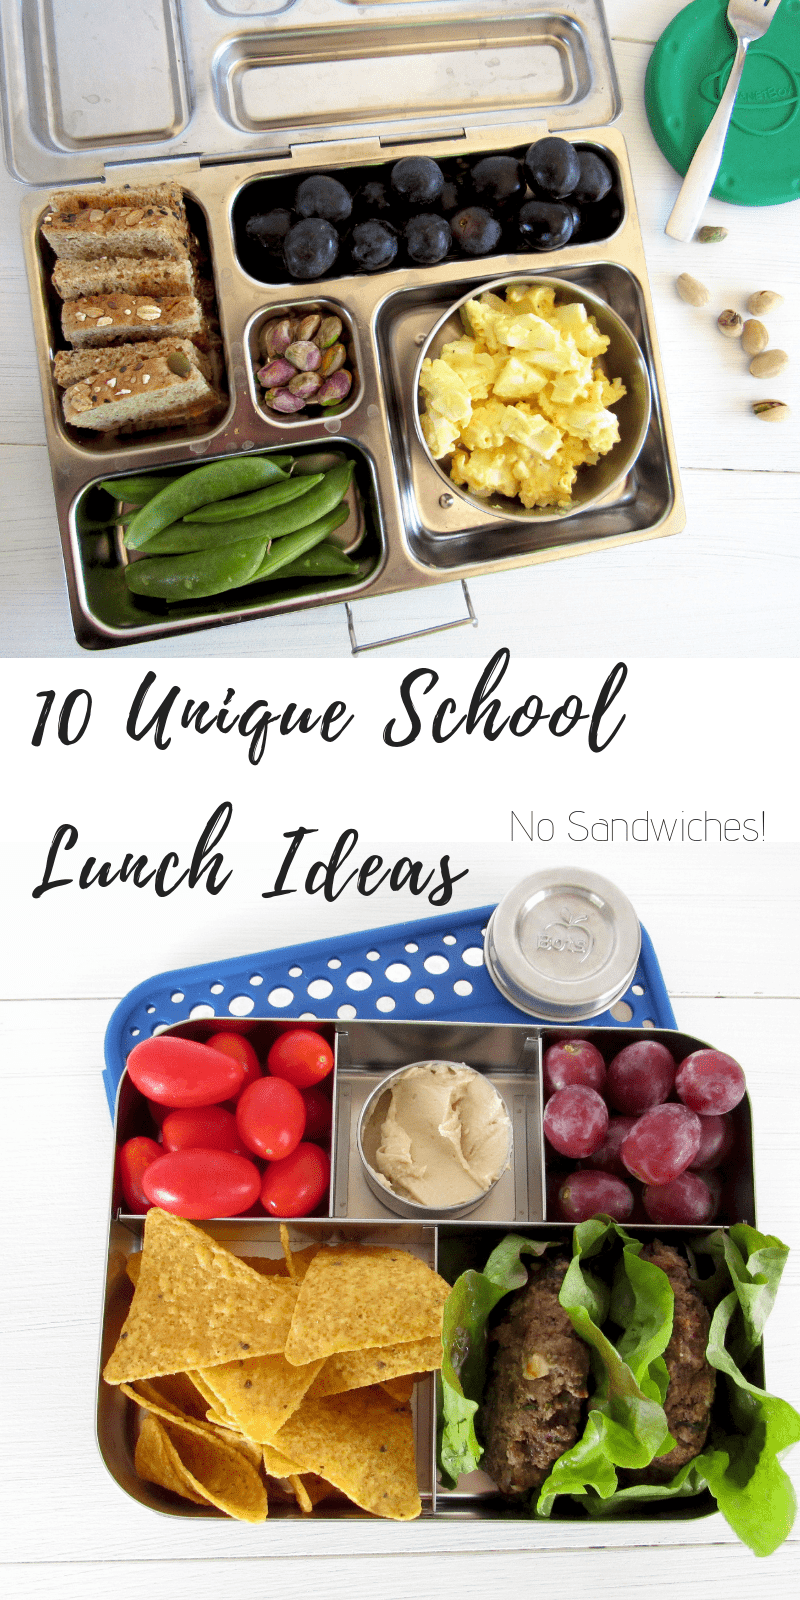 10 unique school lunch ideas no sandwiches #lunchbox #schoollunch #kidfood